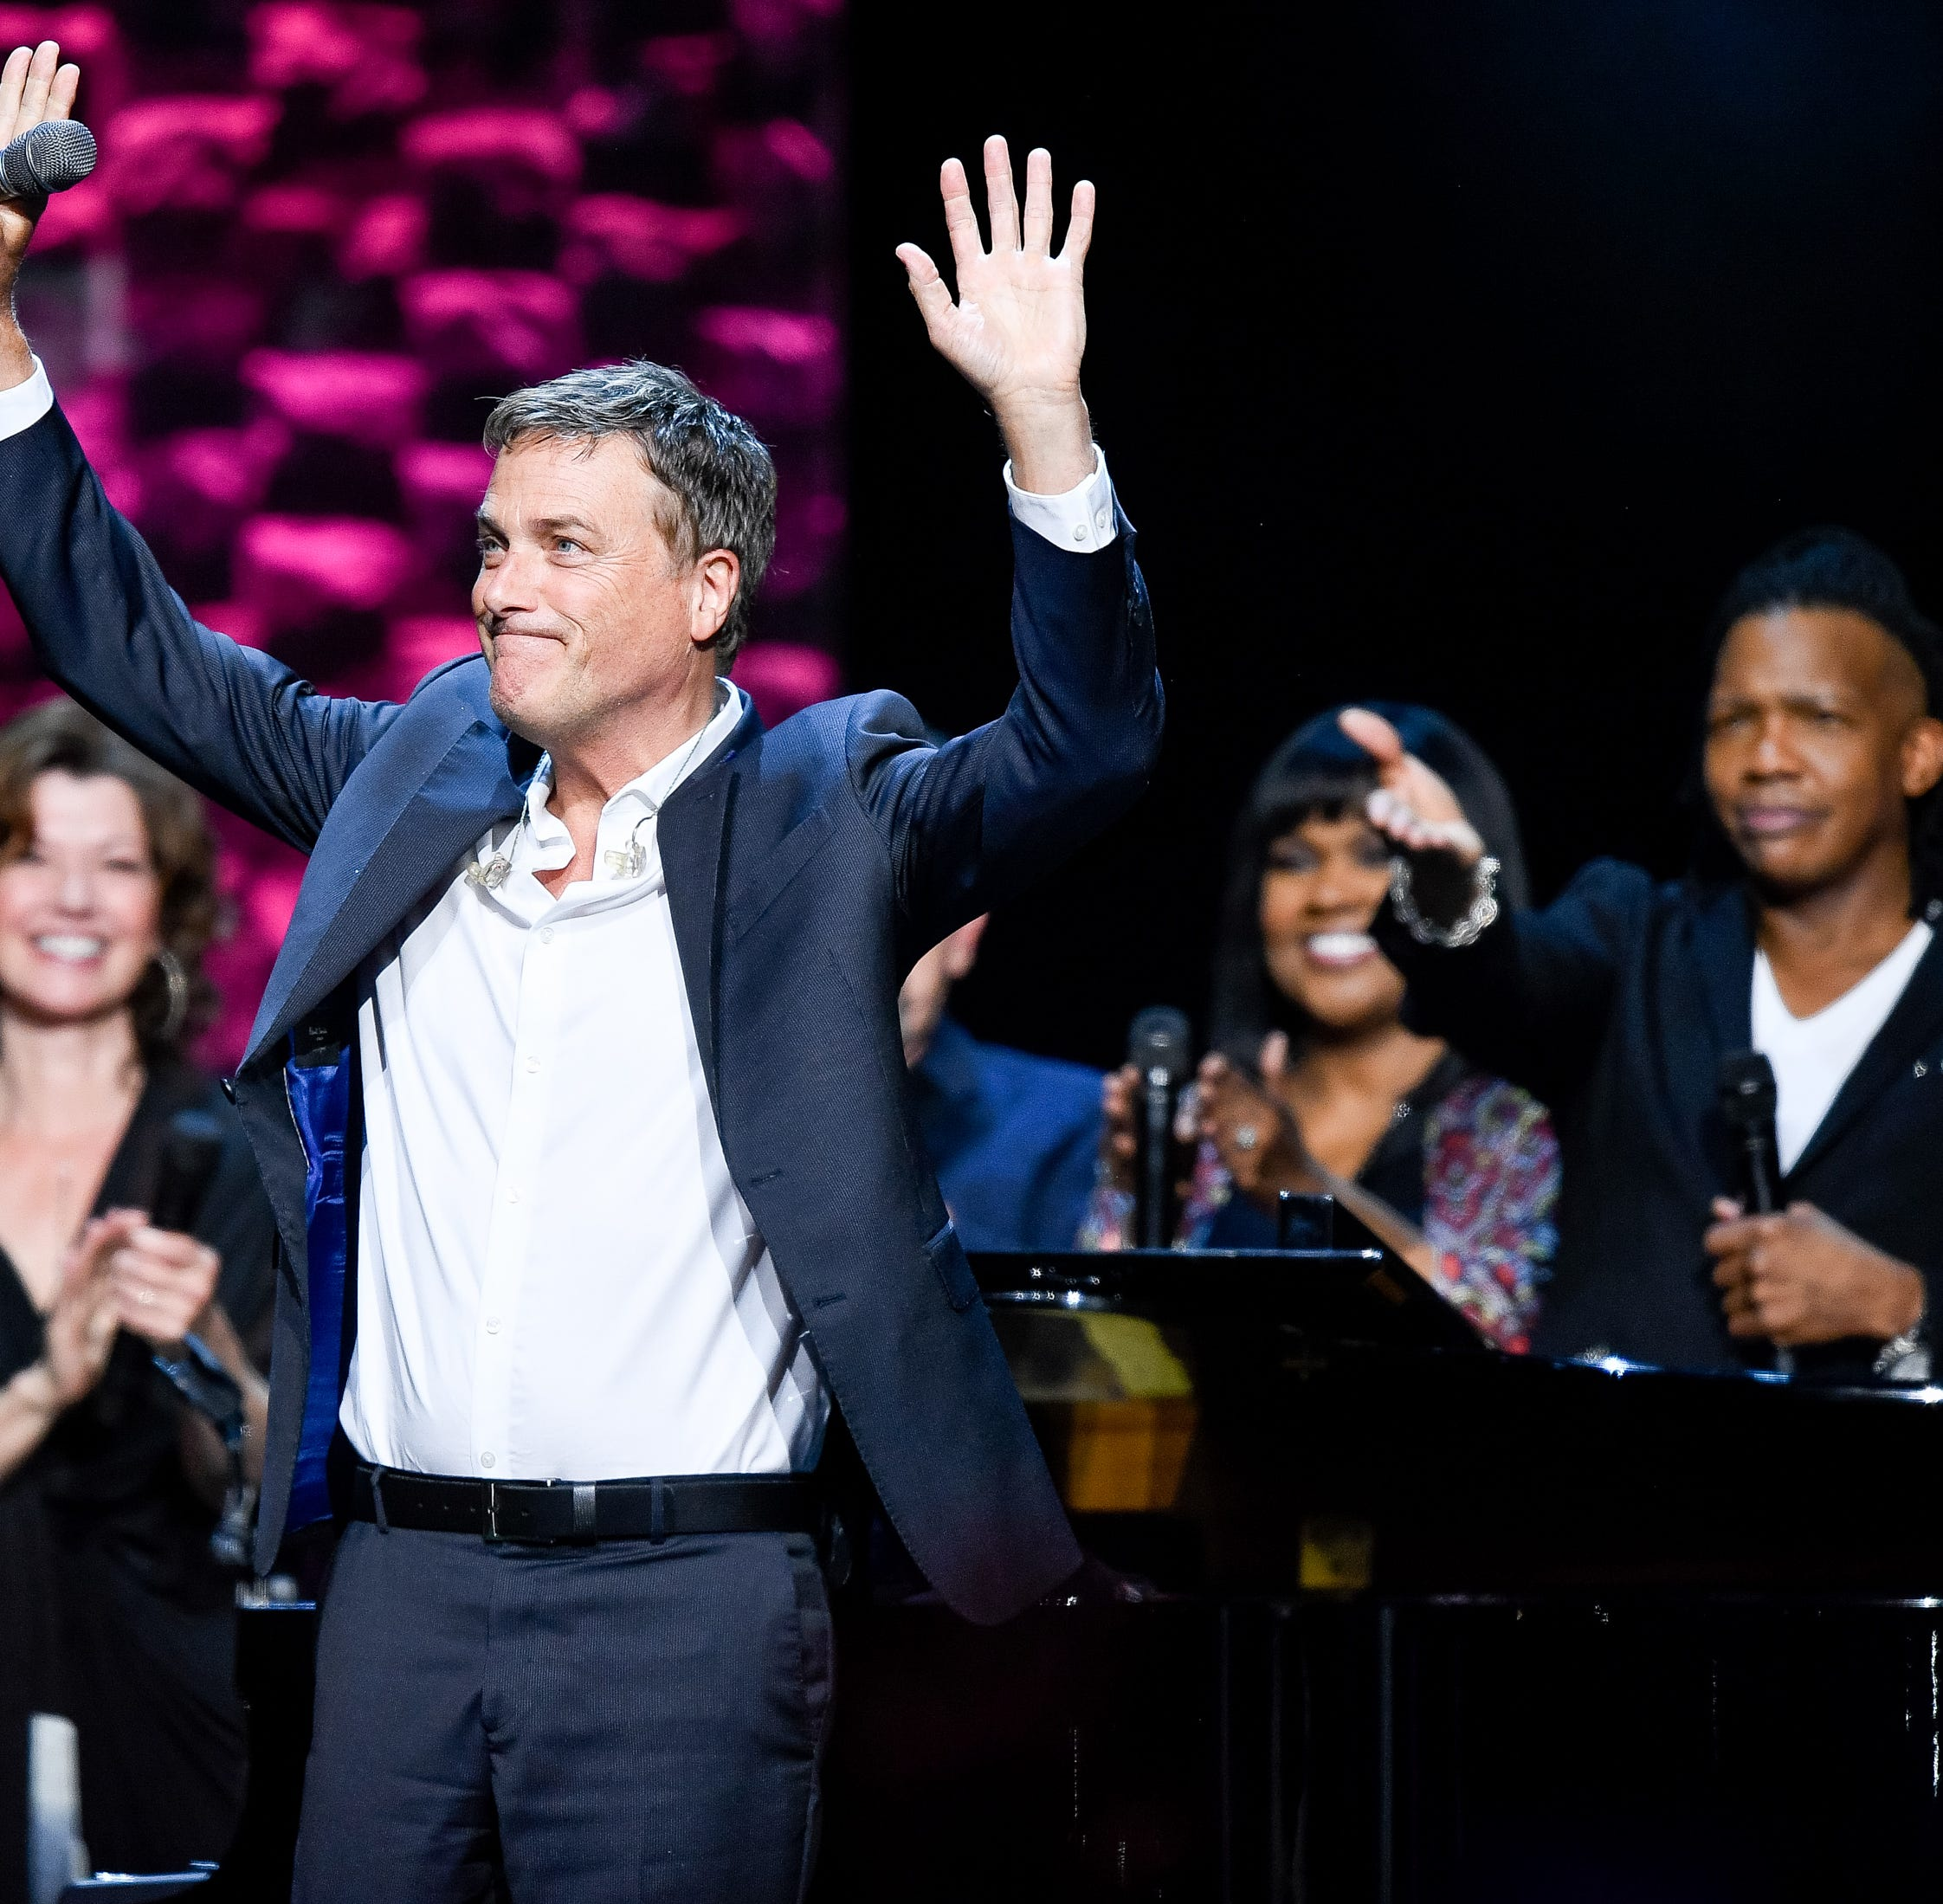 Michael W. Smith marks 35 years with more than 50 fellow artists, three-plus hour tribute